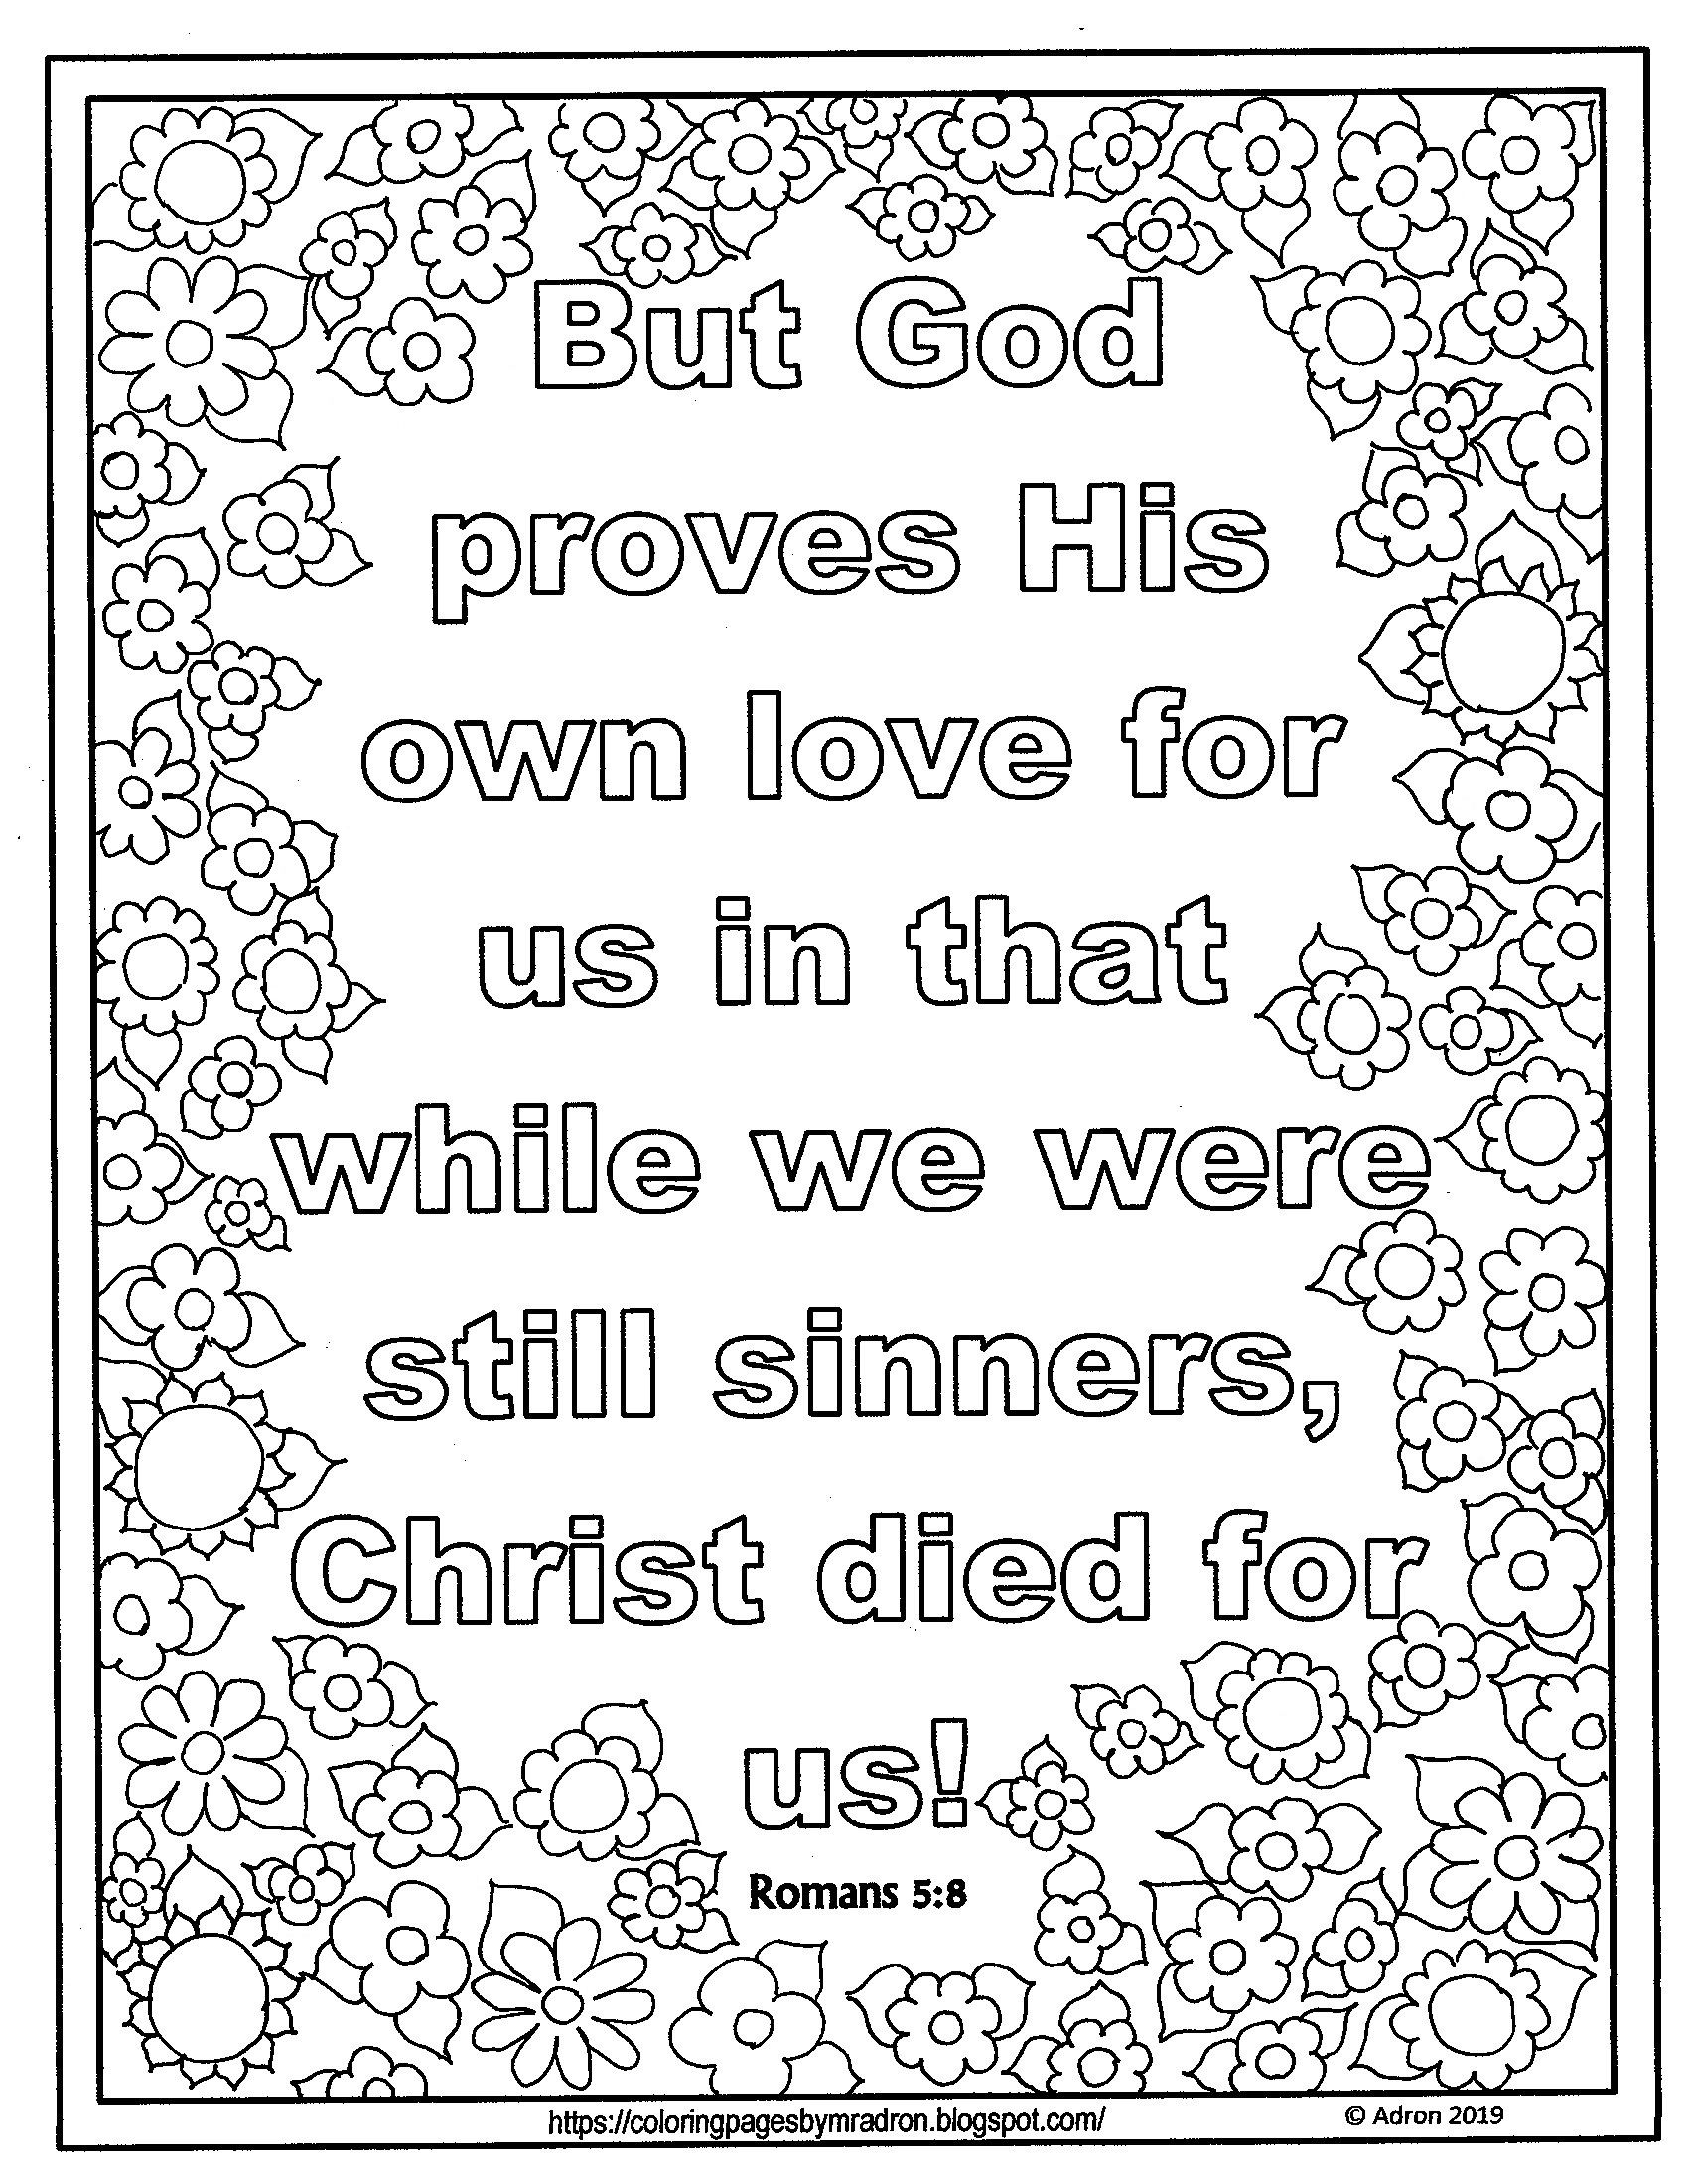 Free Print And Color Page For Lent Devotions Day 22 With Romans 5